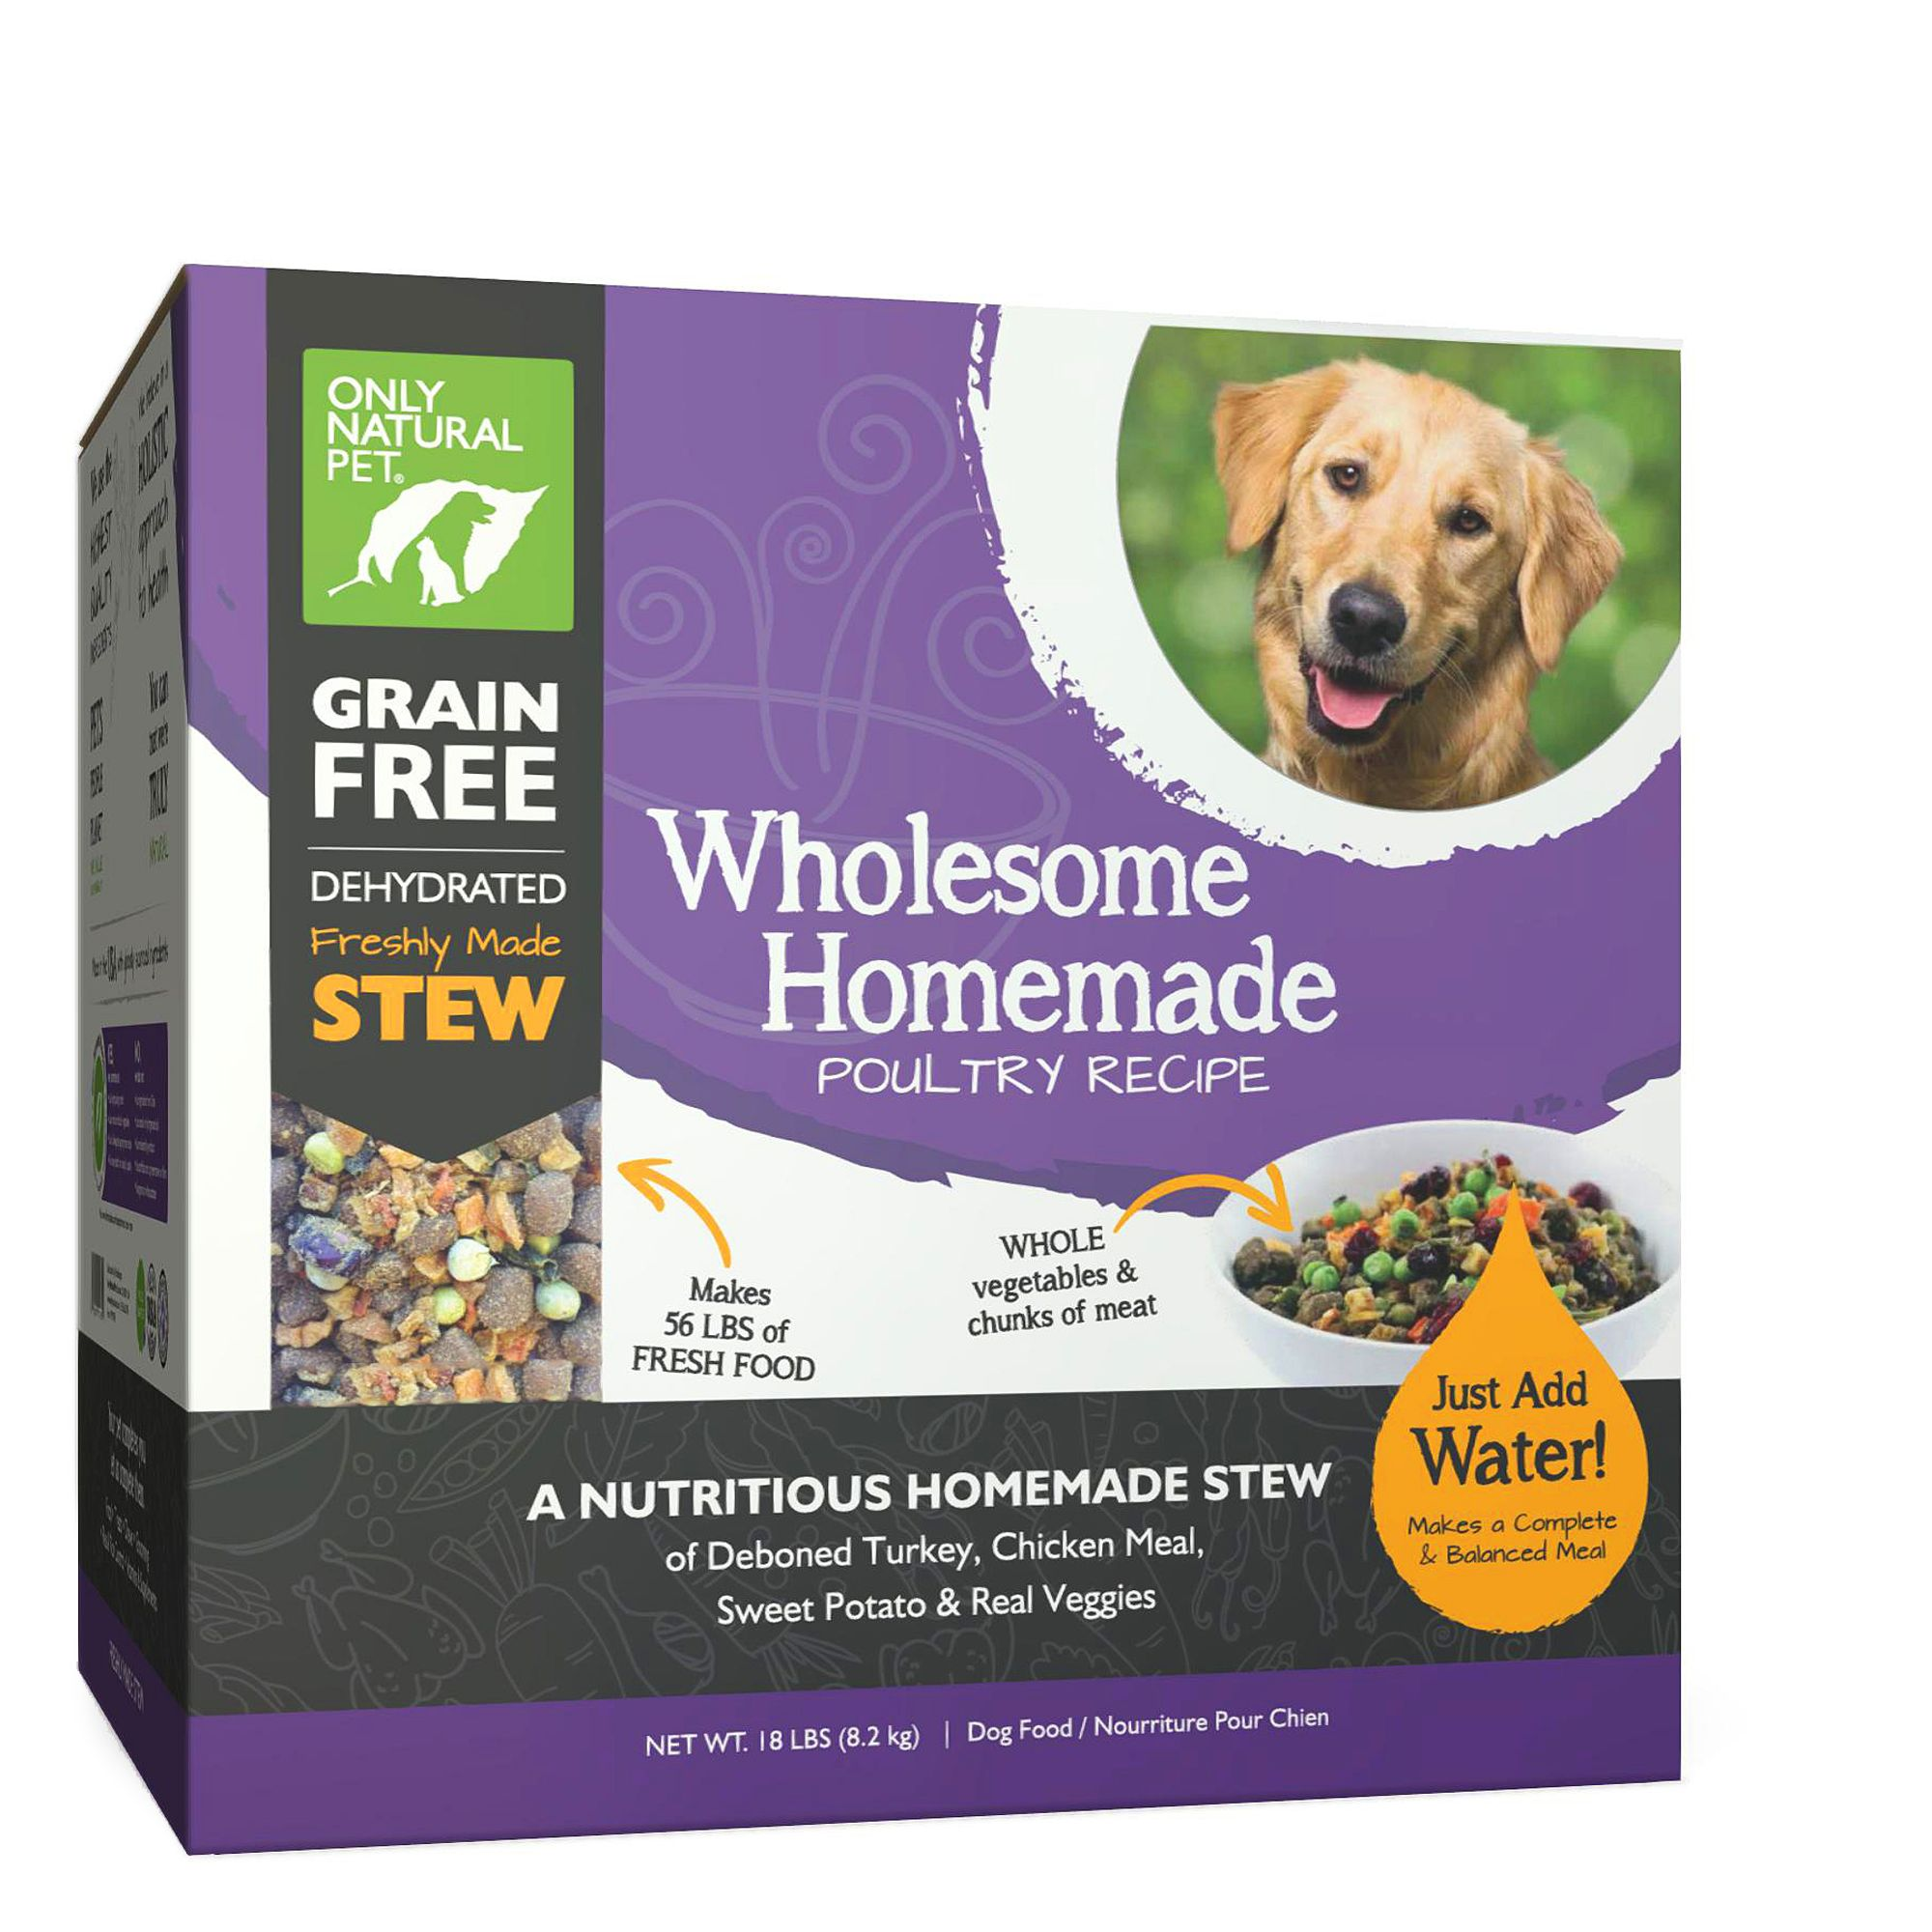 Only Natural Pet Wholesome Homemade Dog Food - Grain Free, Dehydrated, Poultry size: 18 Lb, Turkey, Chicken, Stew 5259851